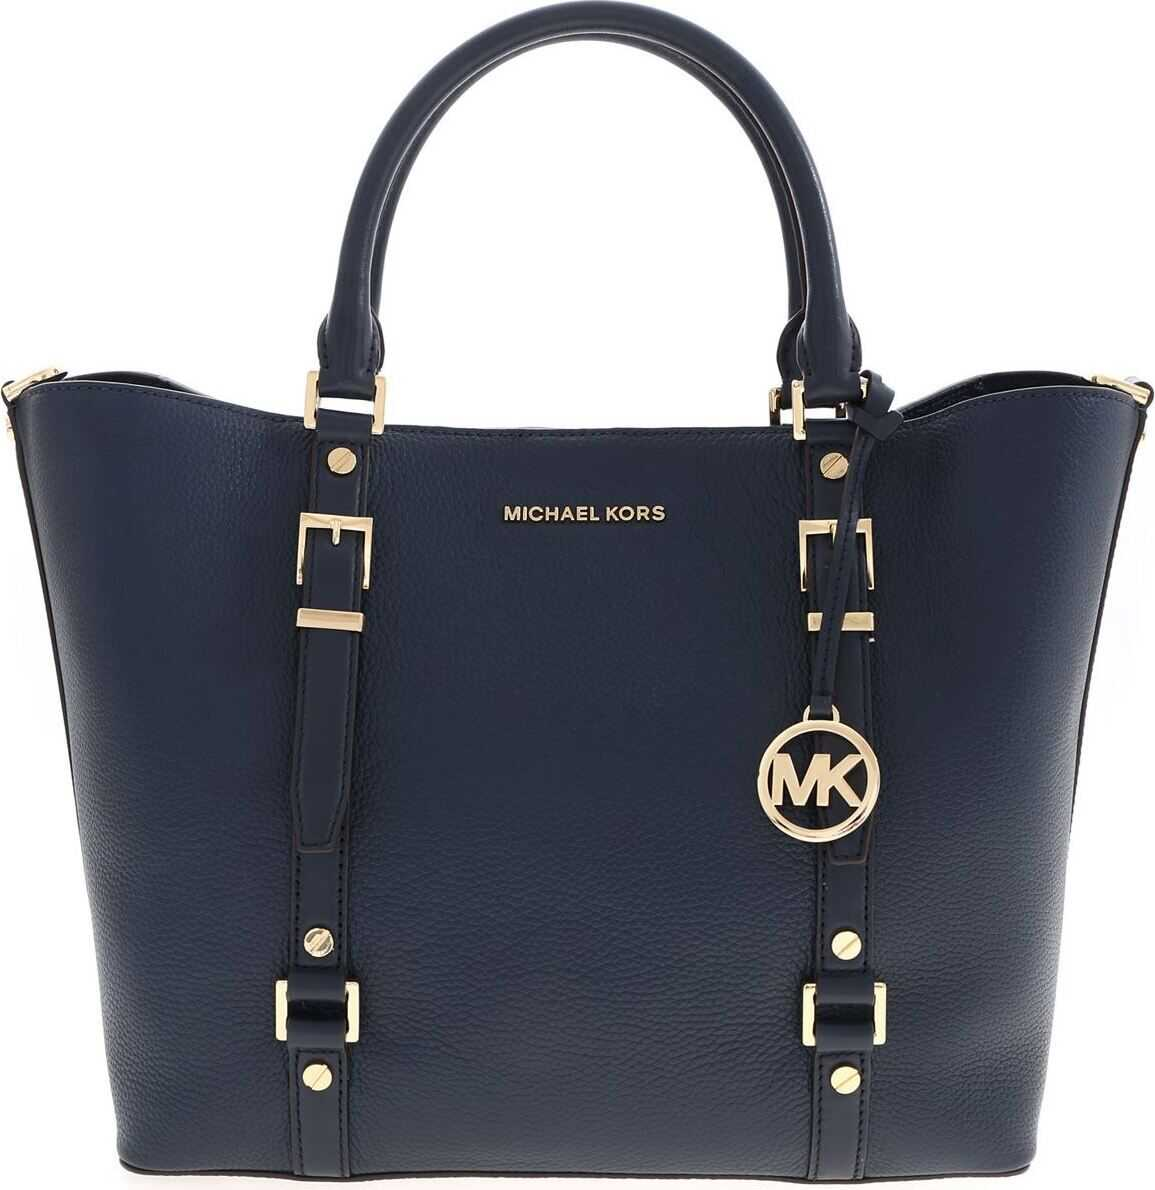 Bedford Legacy Bag In Navy Blue thumbnail